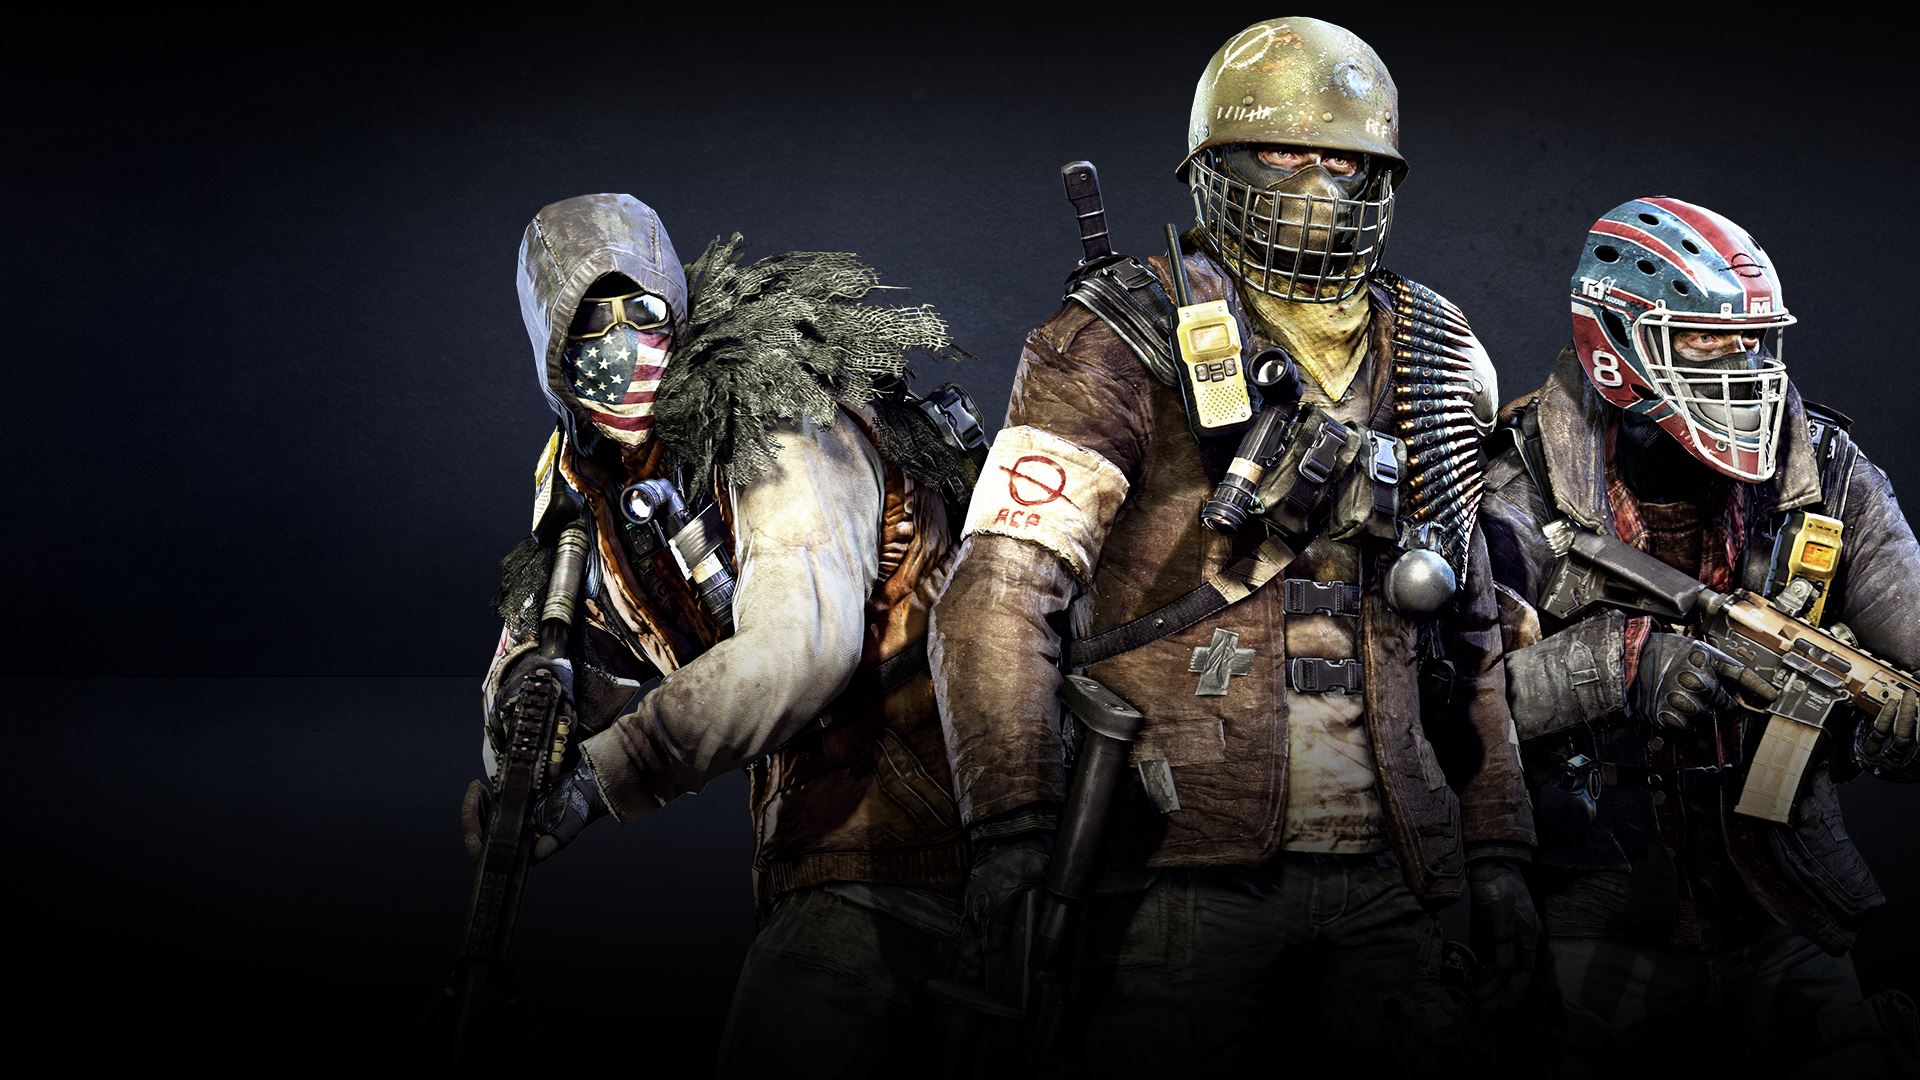 Is one of the best modes to be included in the call of duty franchise